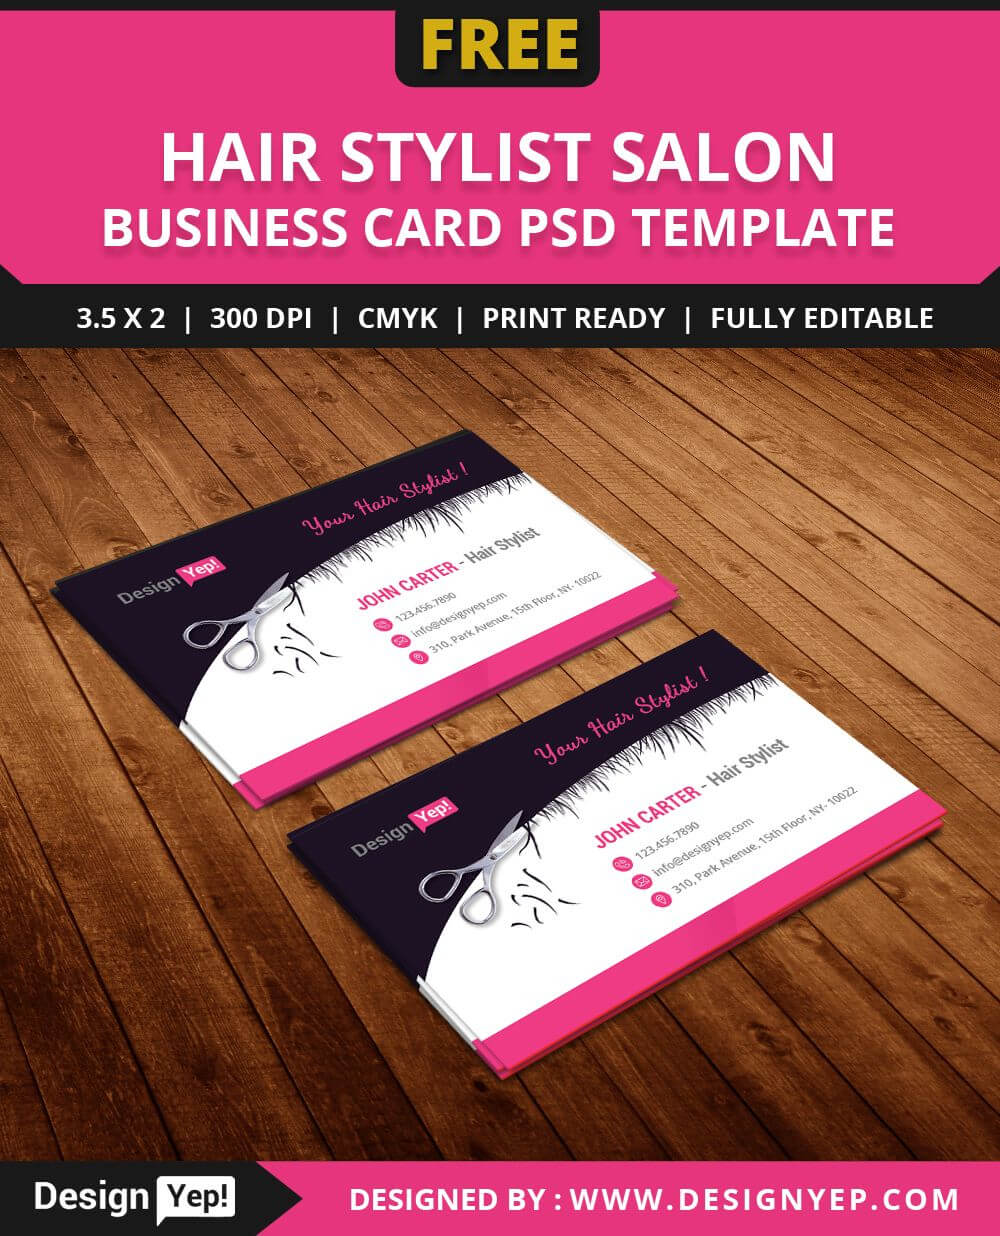 Free Hair Stylist Salon Business Card Template Psd | Free With Hairdresser Business Card Templates Free